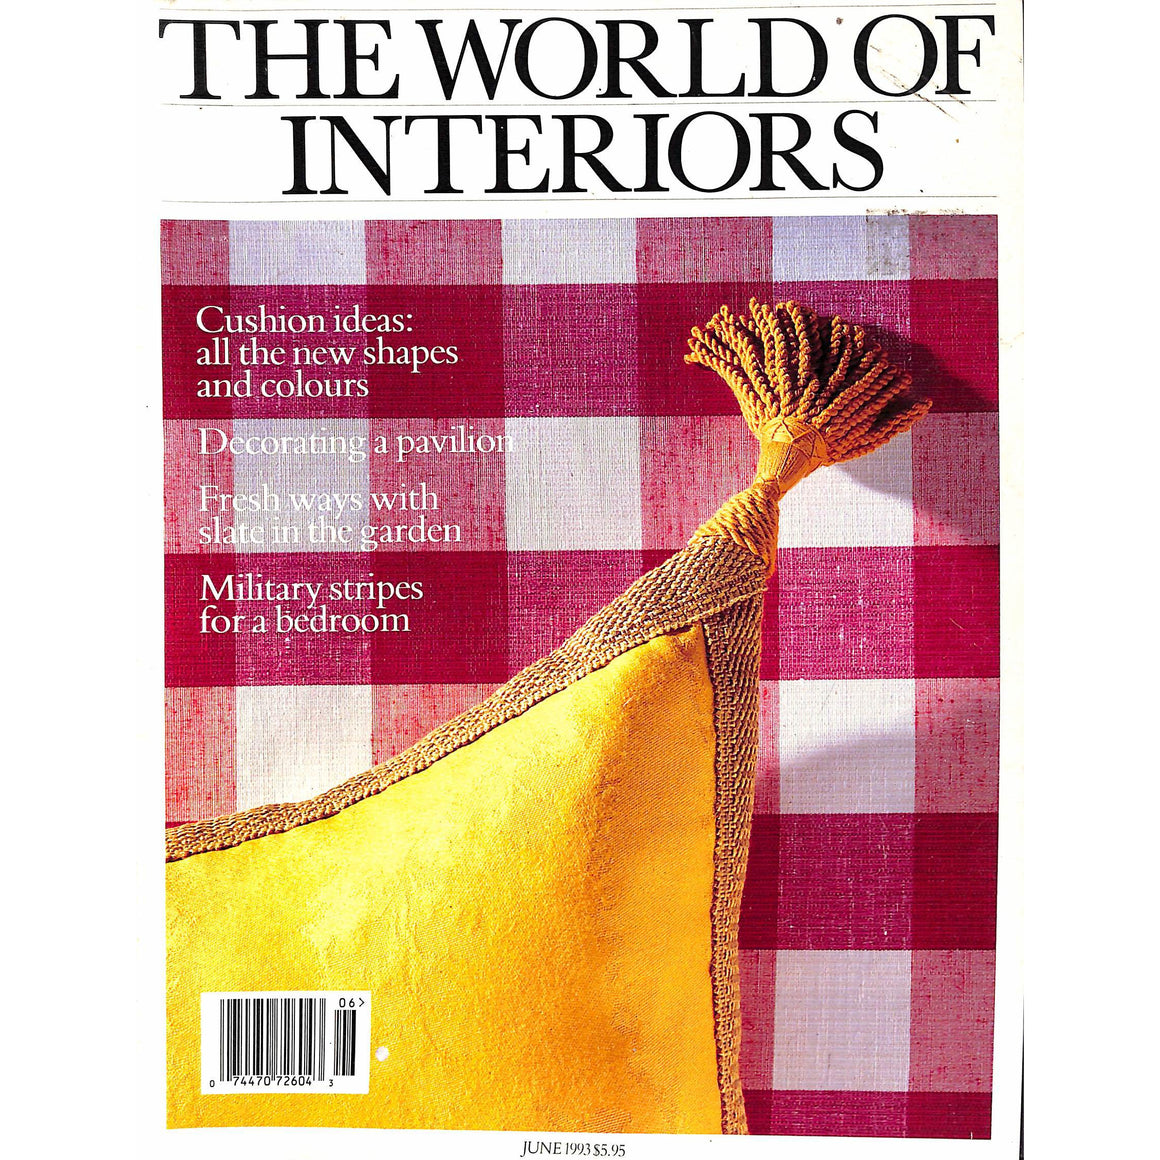 The World Of Interiors June 1993